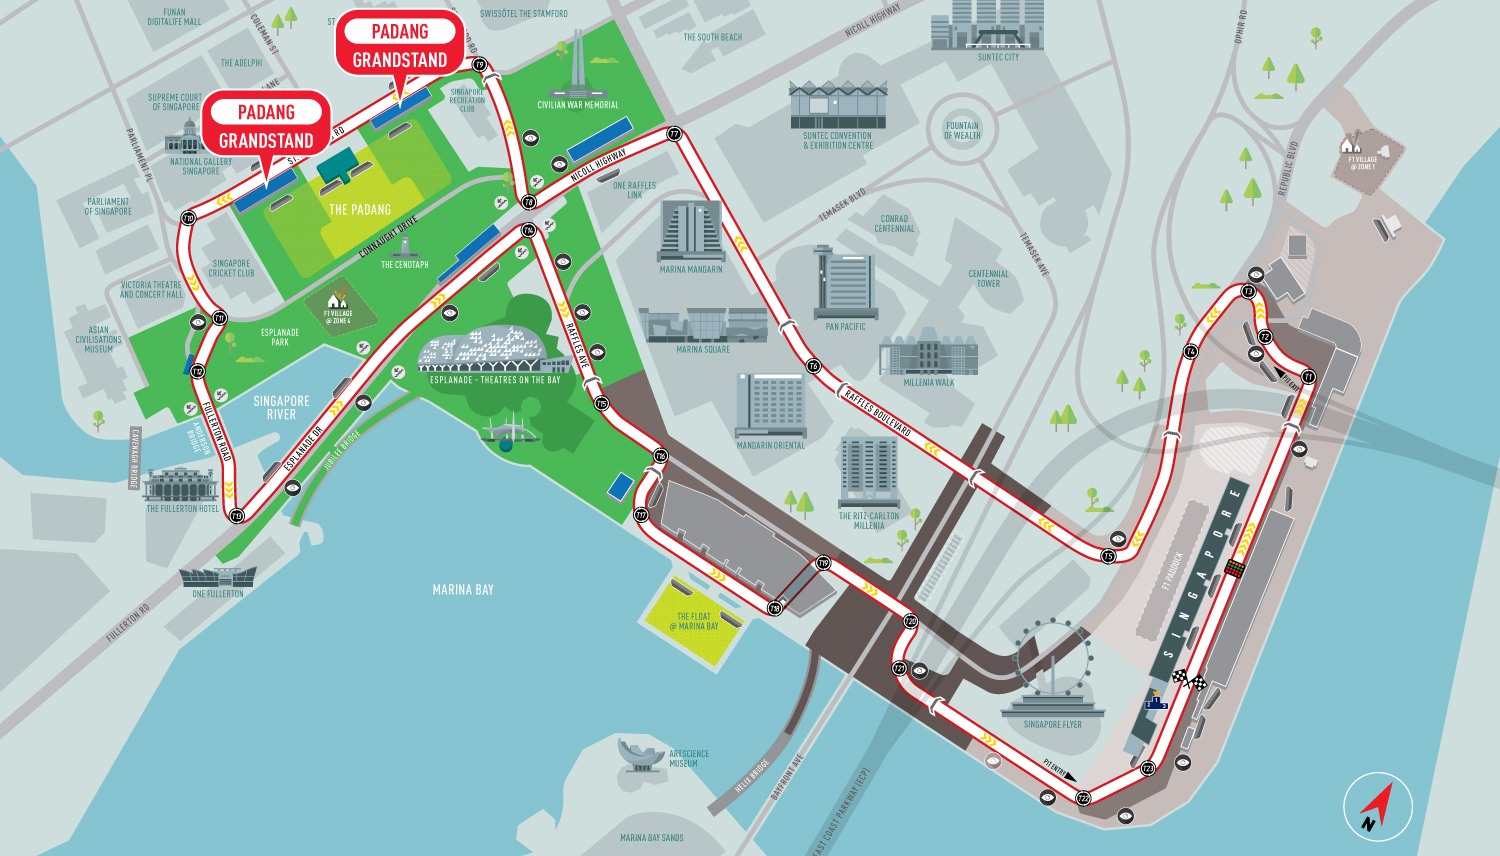 Padang racetrack map Singapore Grand Prix Packages